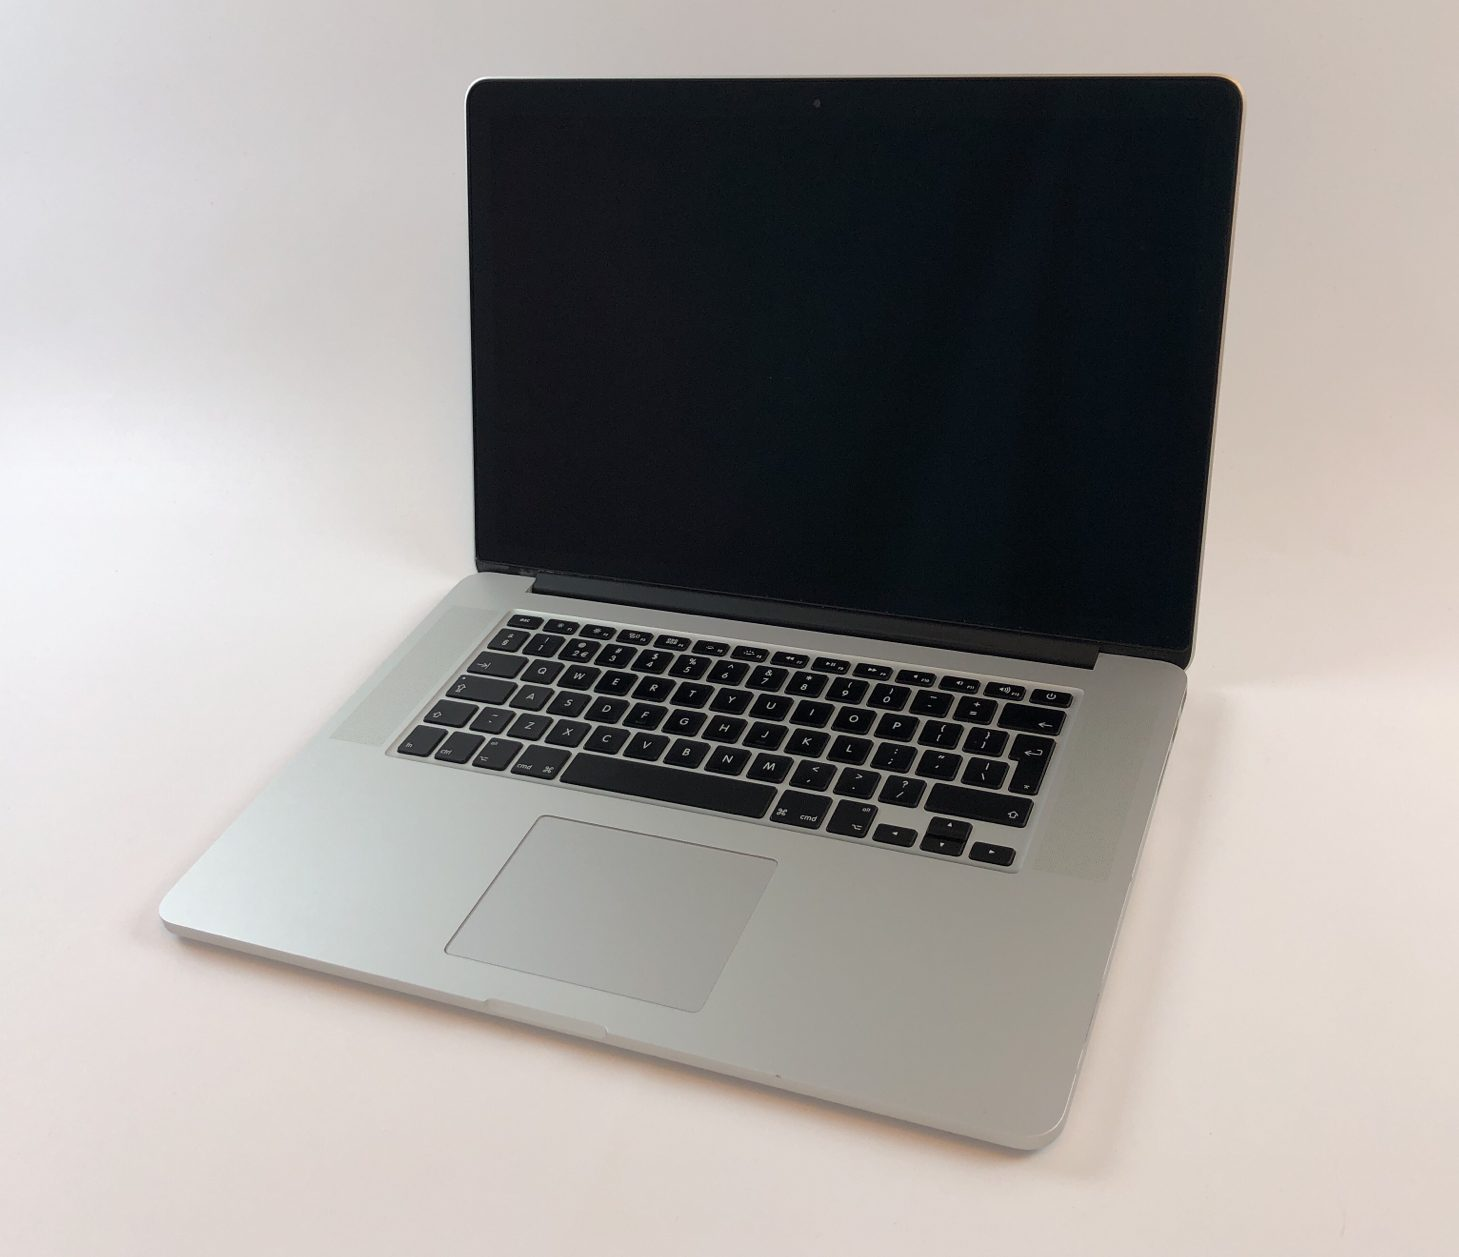 "MacBook Pro Retina 15"" Mid 2015 (Intel Quad-Core i7 2.8 GHz 16 GB RAM 512 GB SSD), Intel Quad-Core i7 2.8 GHz, 16 GB RAM, 512 GB SSD, Afbeelding 1"